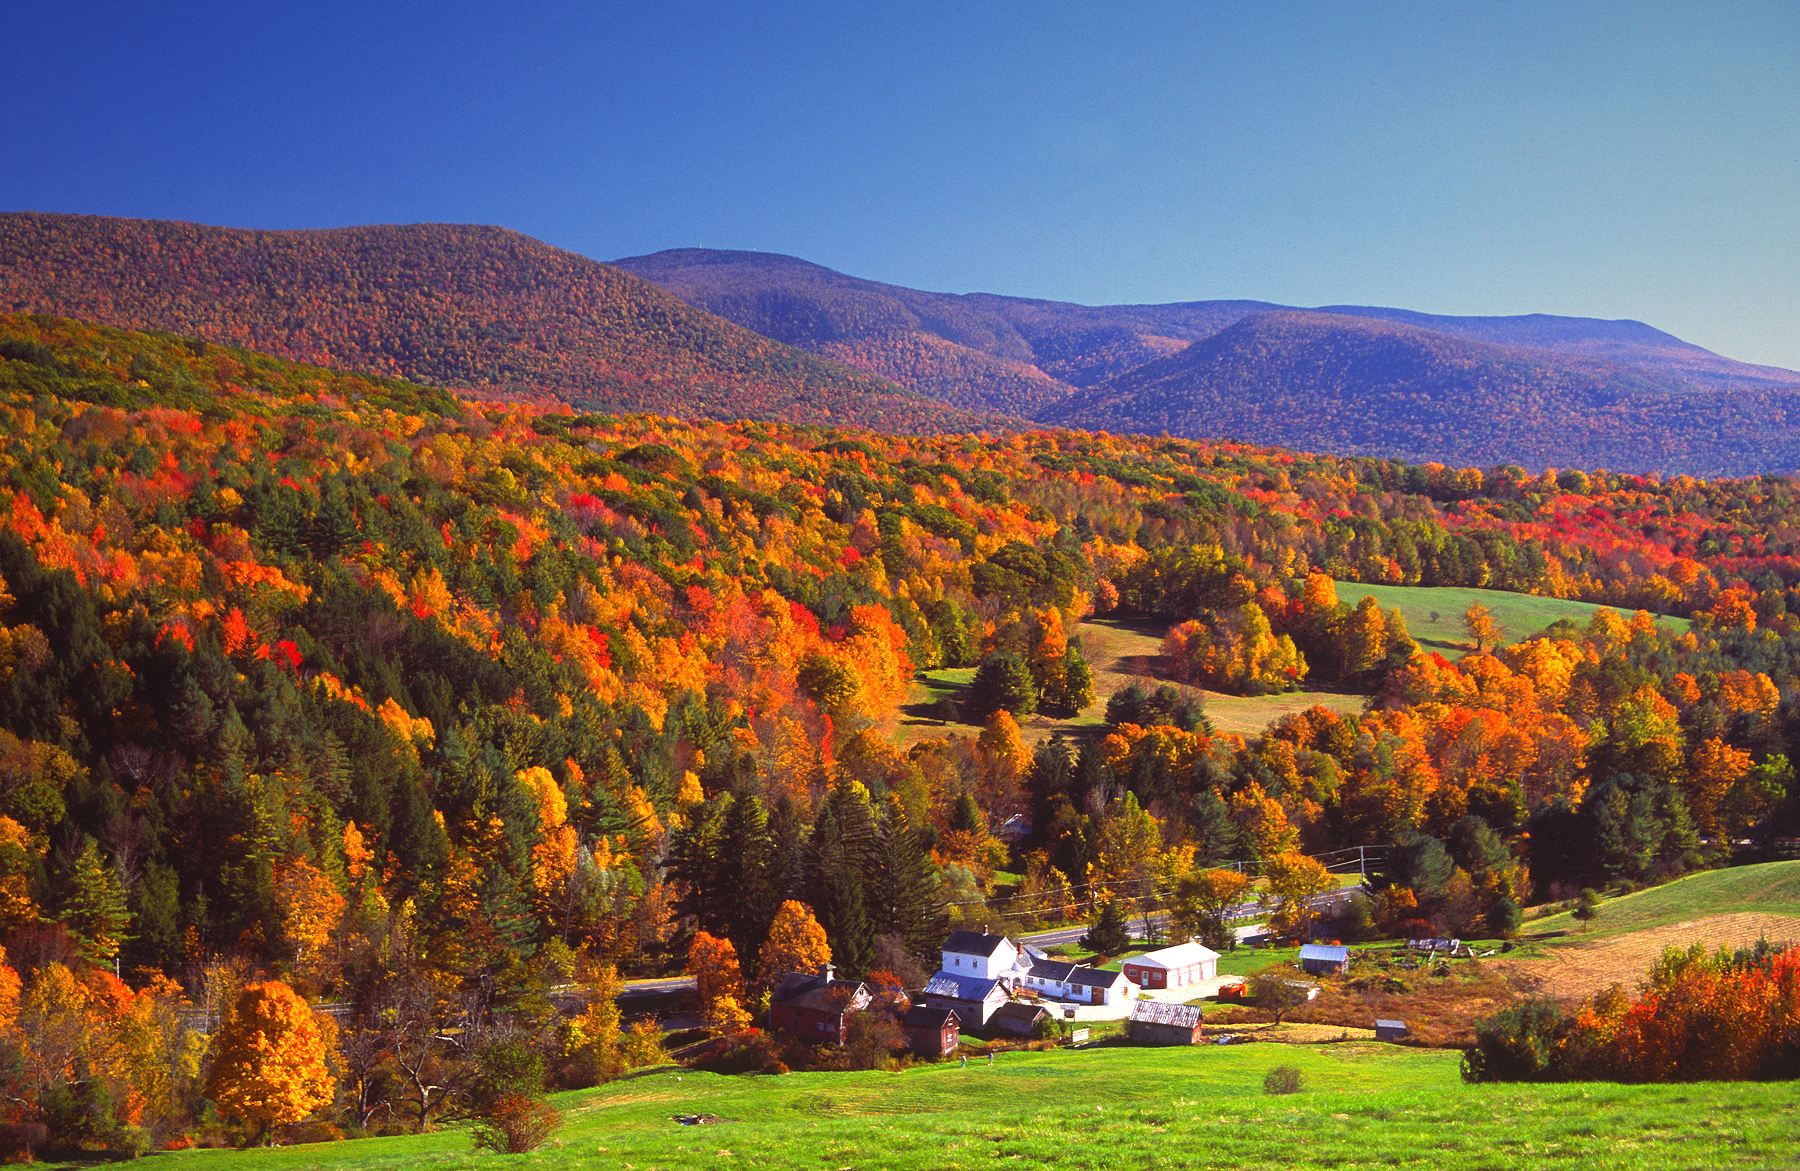 New England Fall Foliage Best Areas To Watch The Leaves